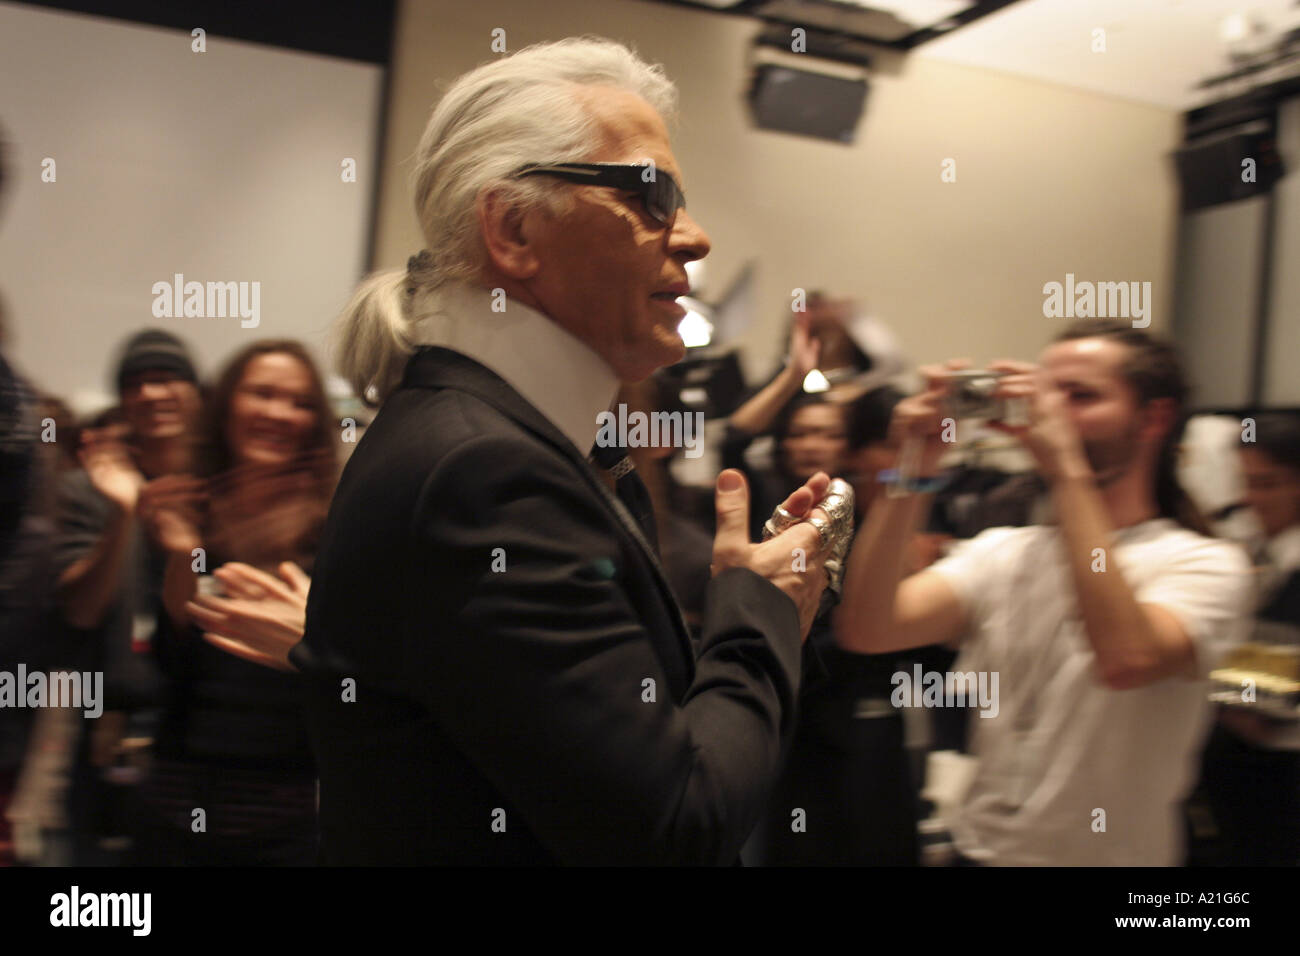 Karl Lagerfeld and models applaud each other backstage after Chanel fashion show, Tokyo, Japan. - Stock Image